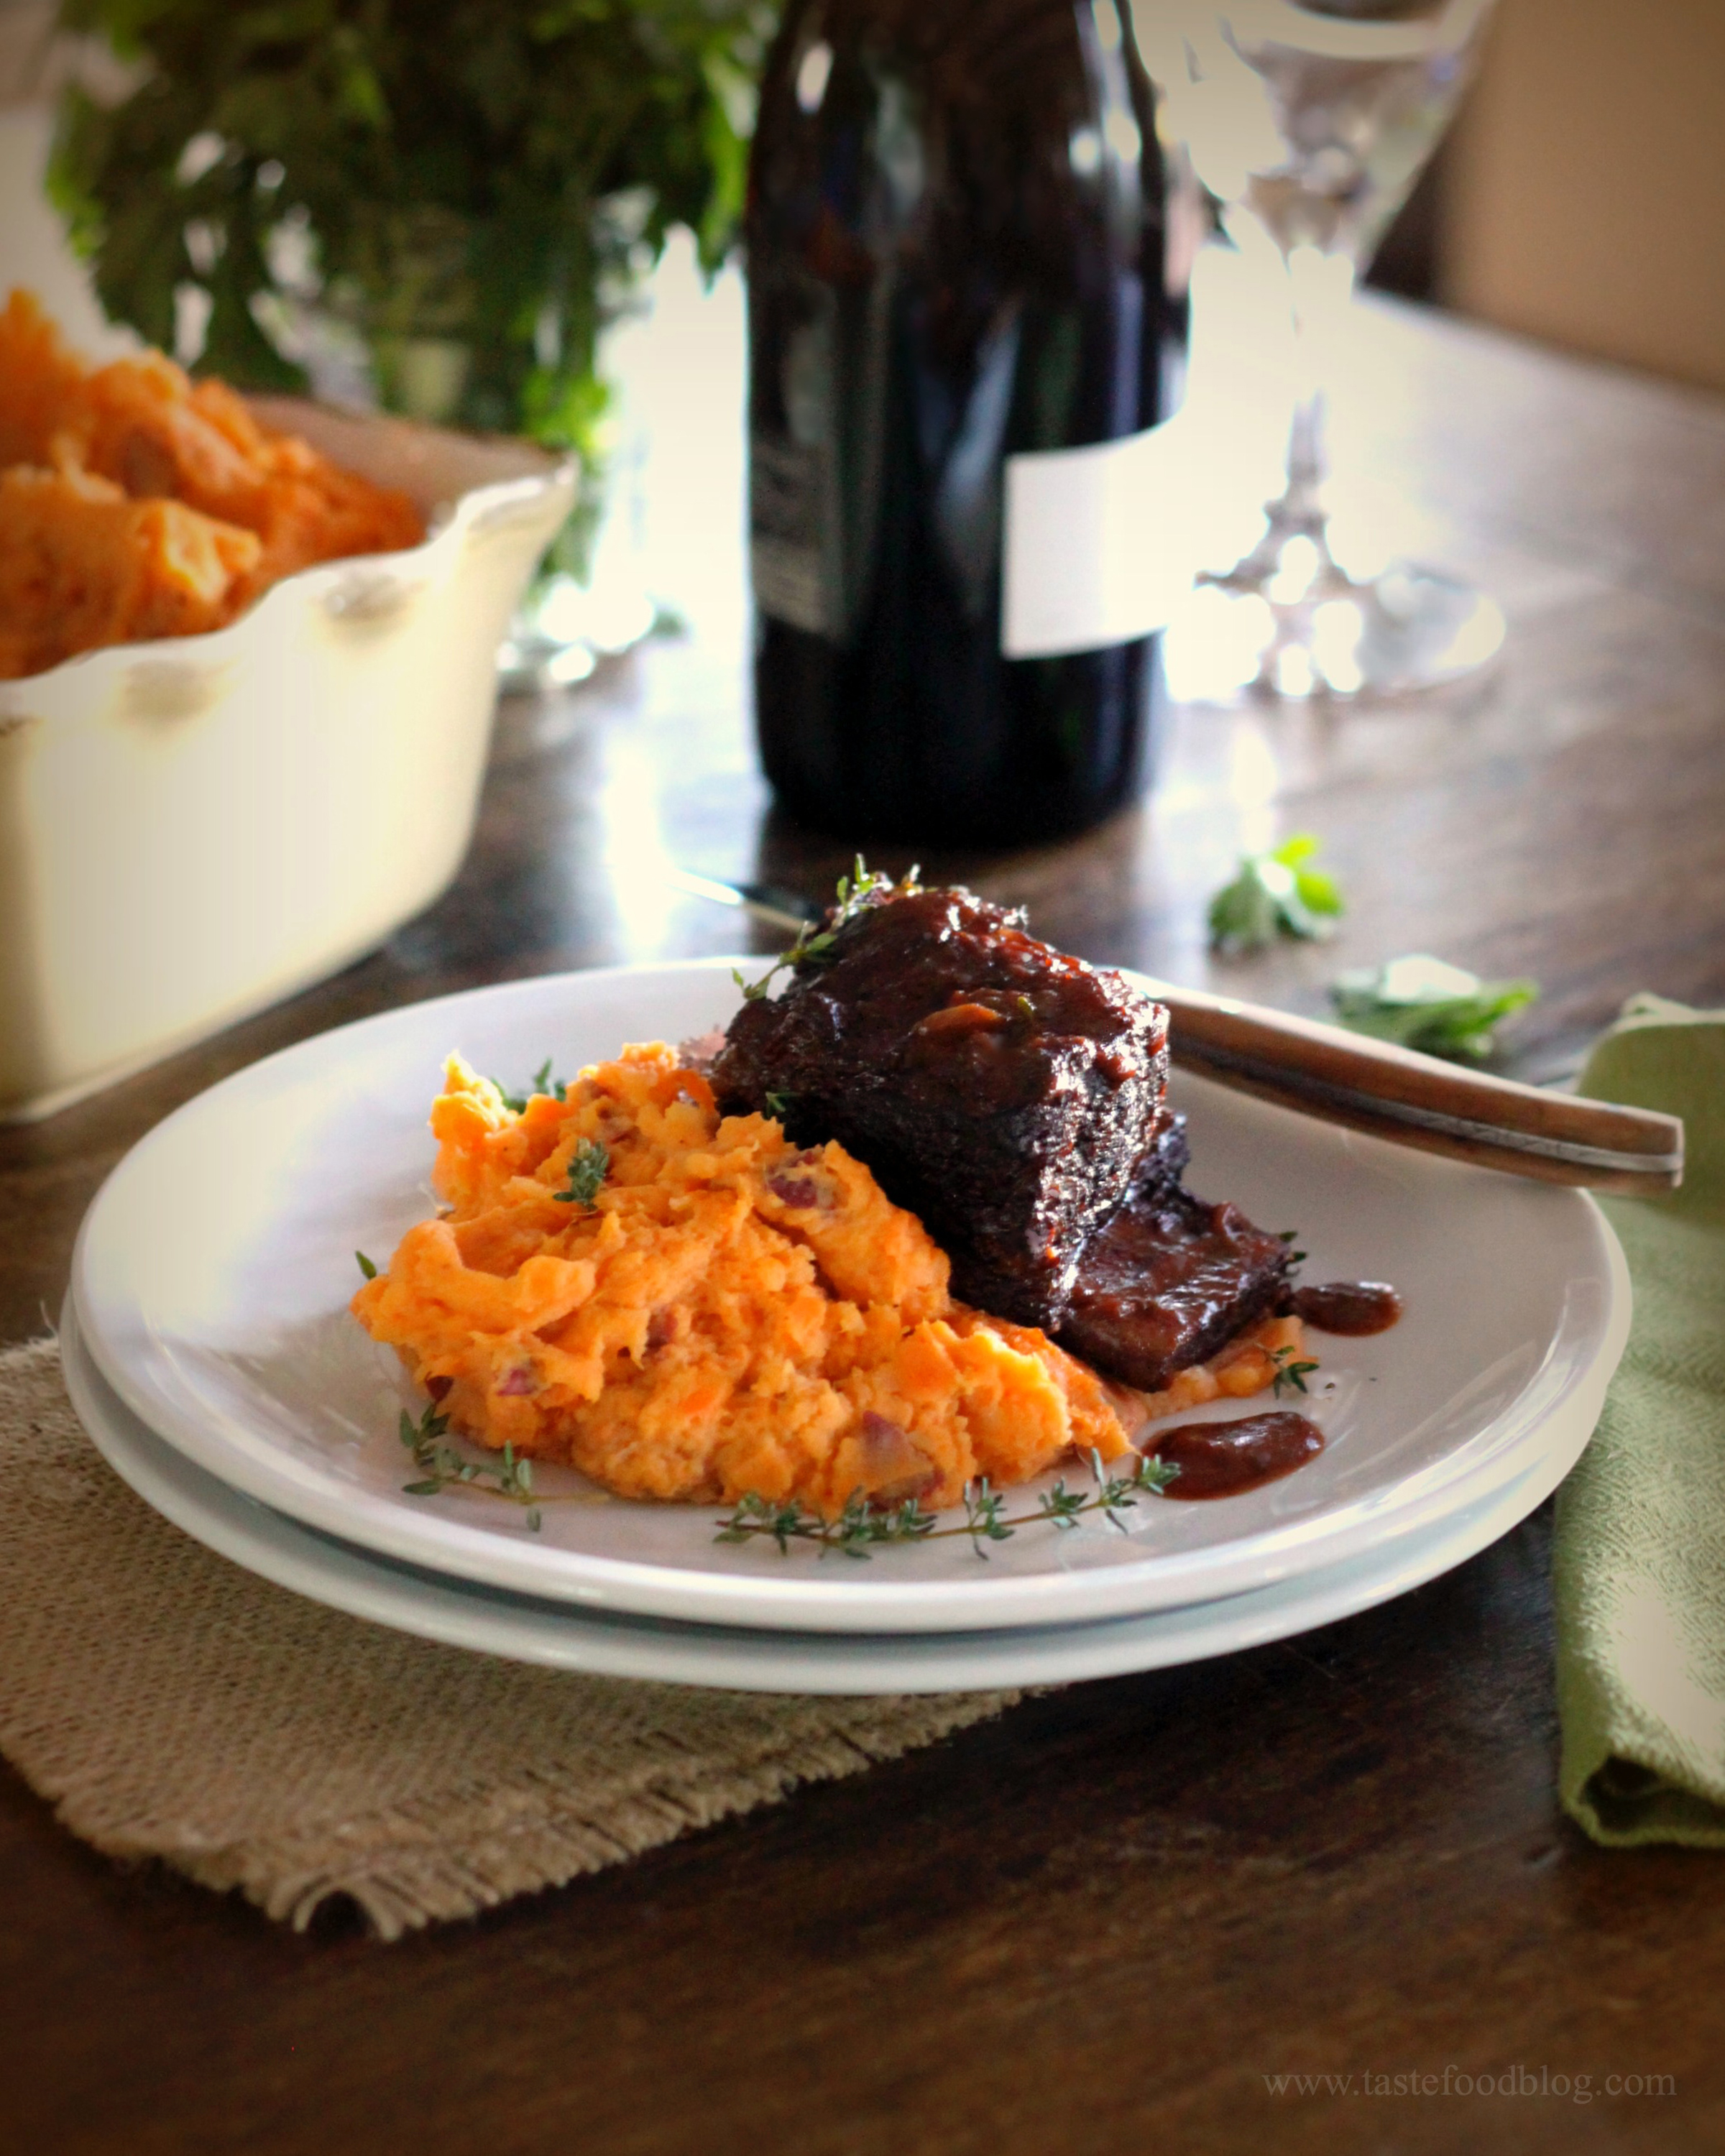 Braised and Glazed Short Ribs